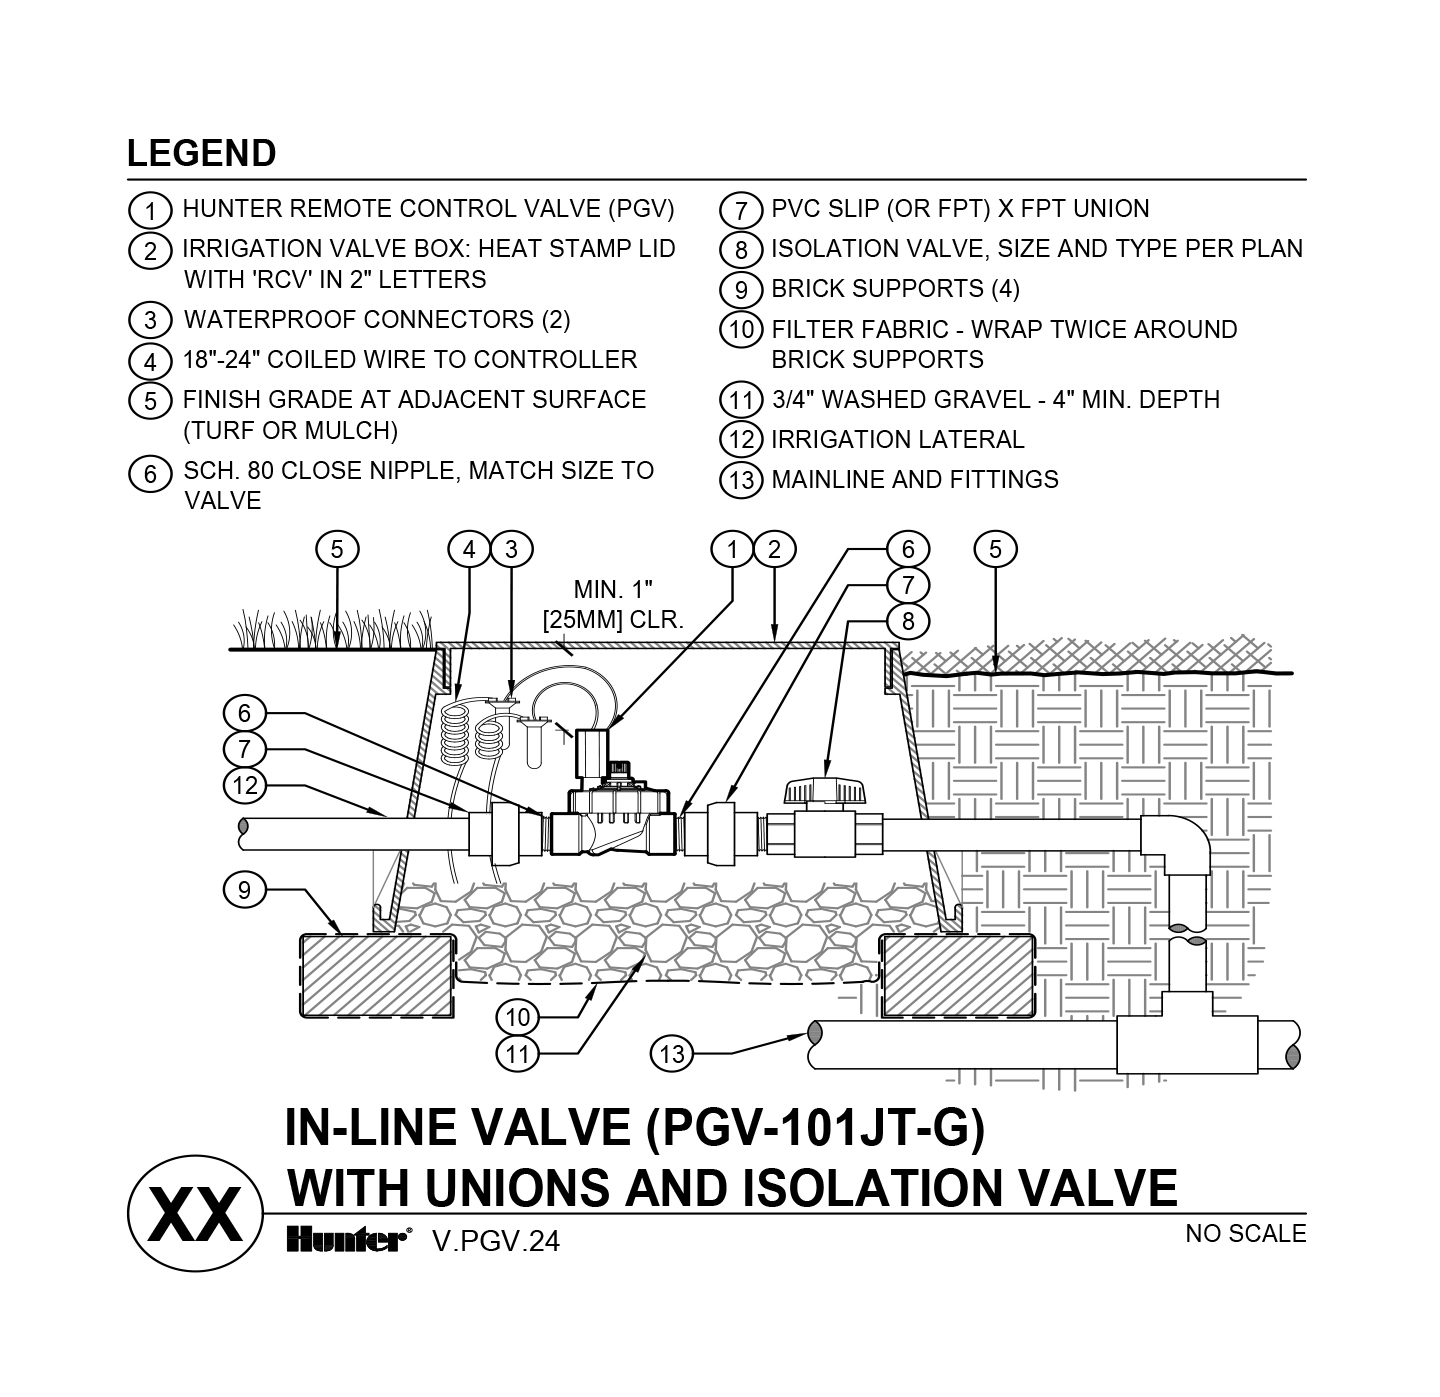 CAD - PGV-101JT-G with unions and shutoff valve